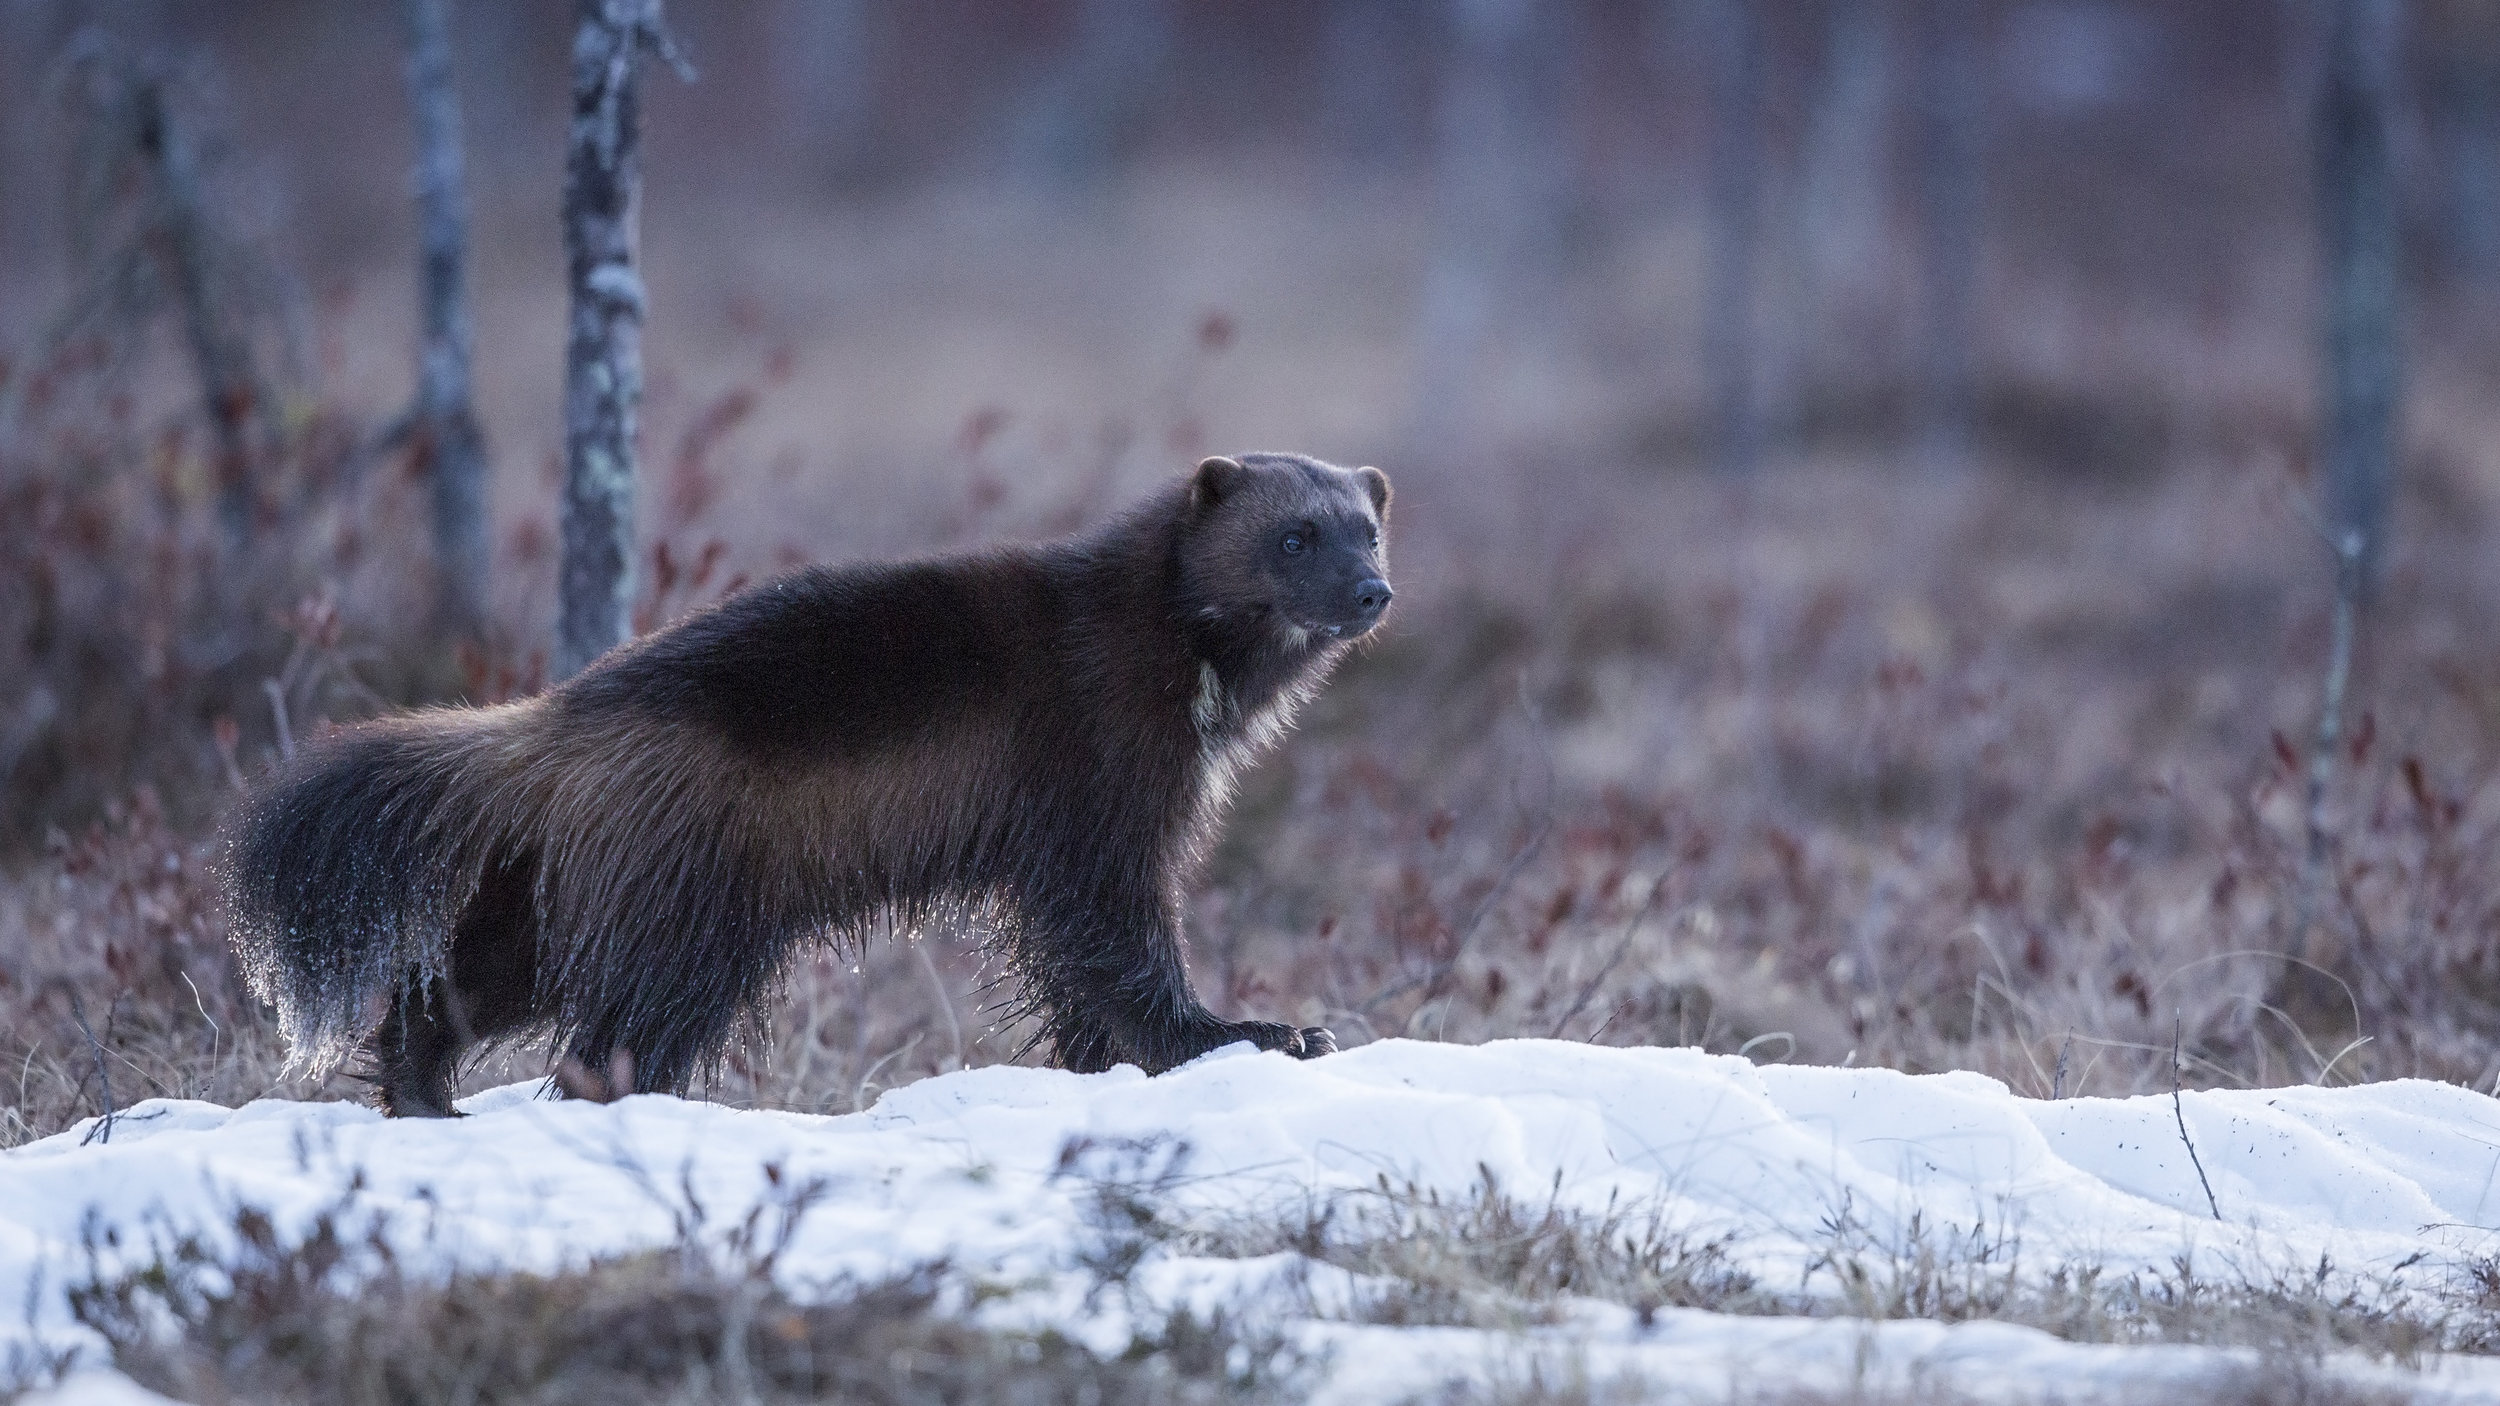 A Wolverine with an ice covered tail pauses momentarily at the East lake.